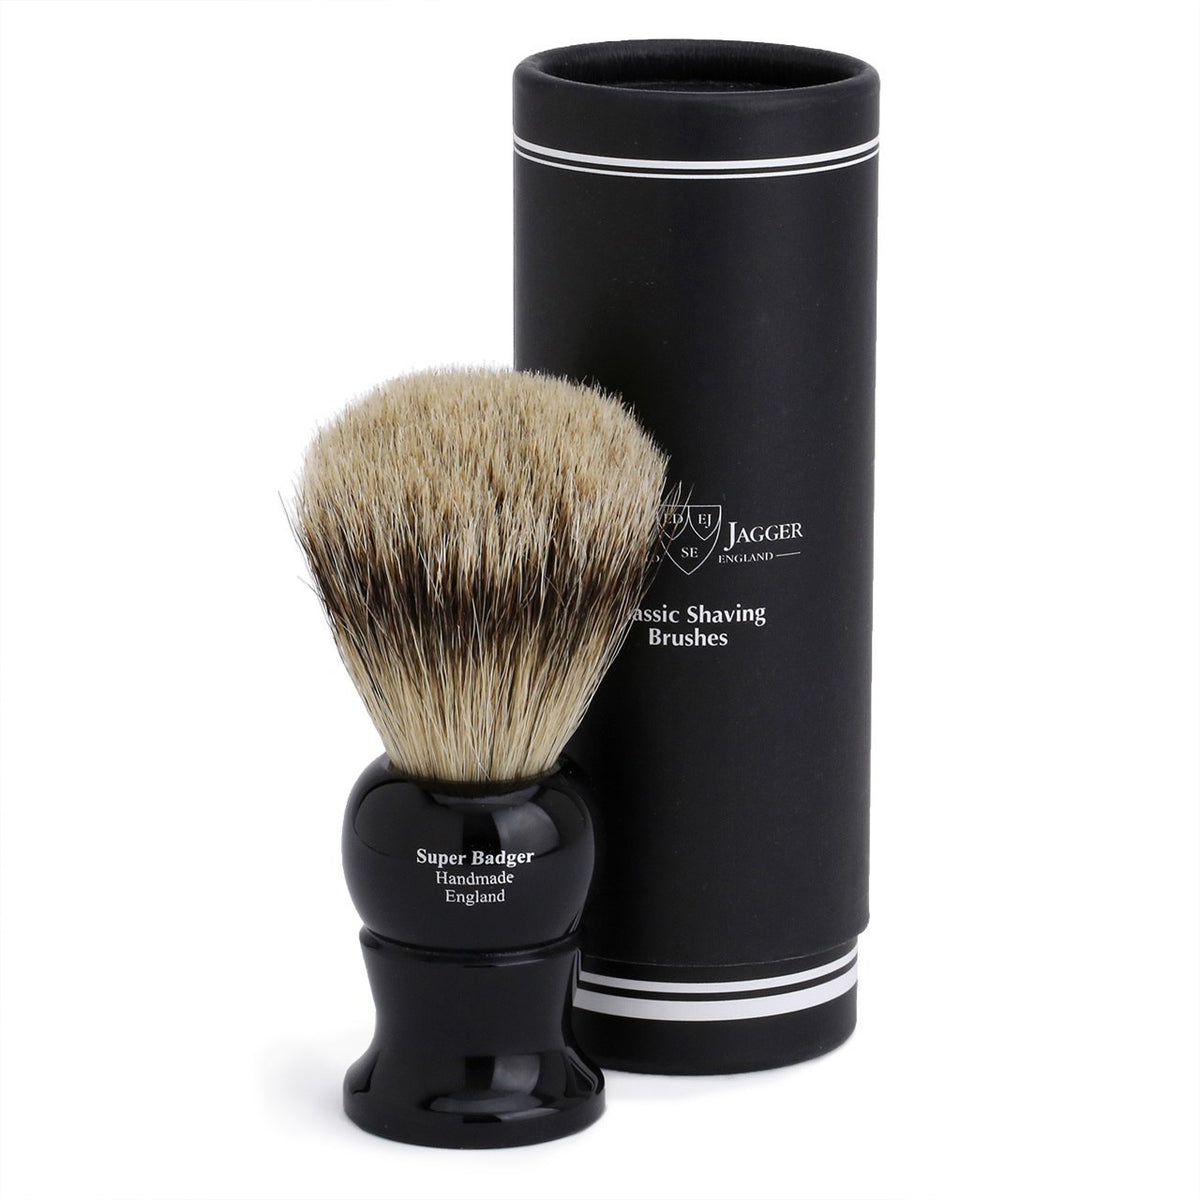 Edwin Jagger Super Badger Large Shaving Brush - Imitation Ebony